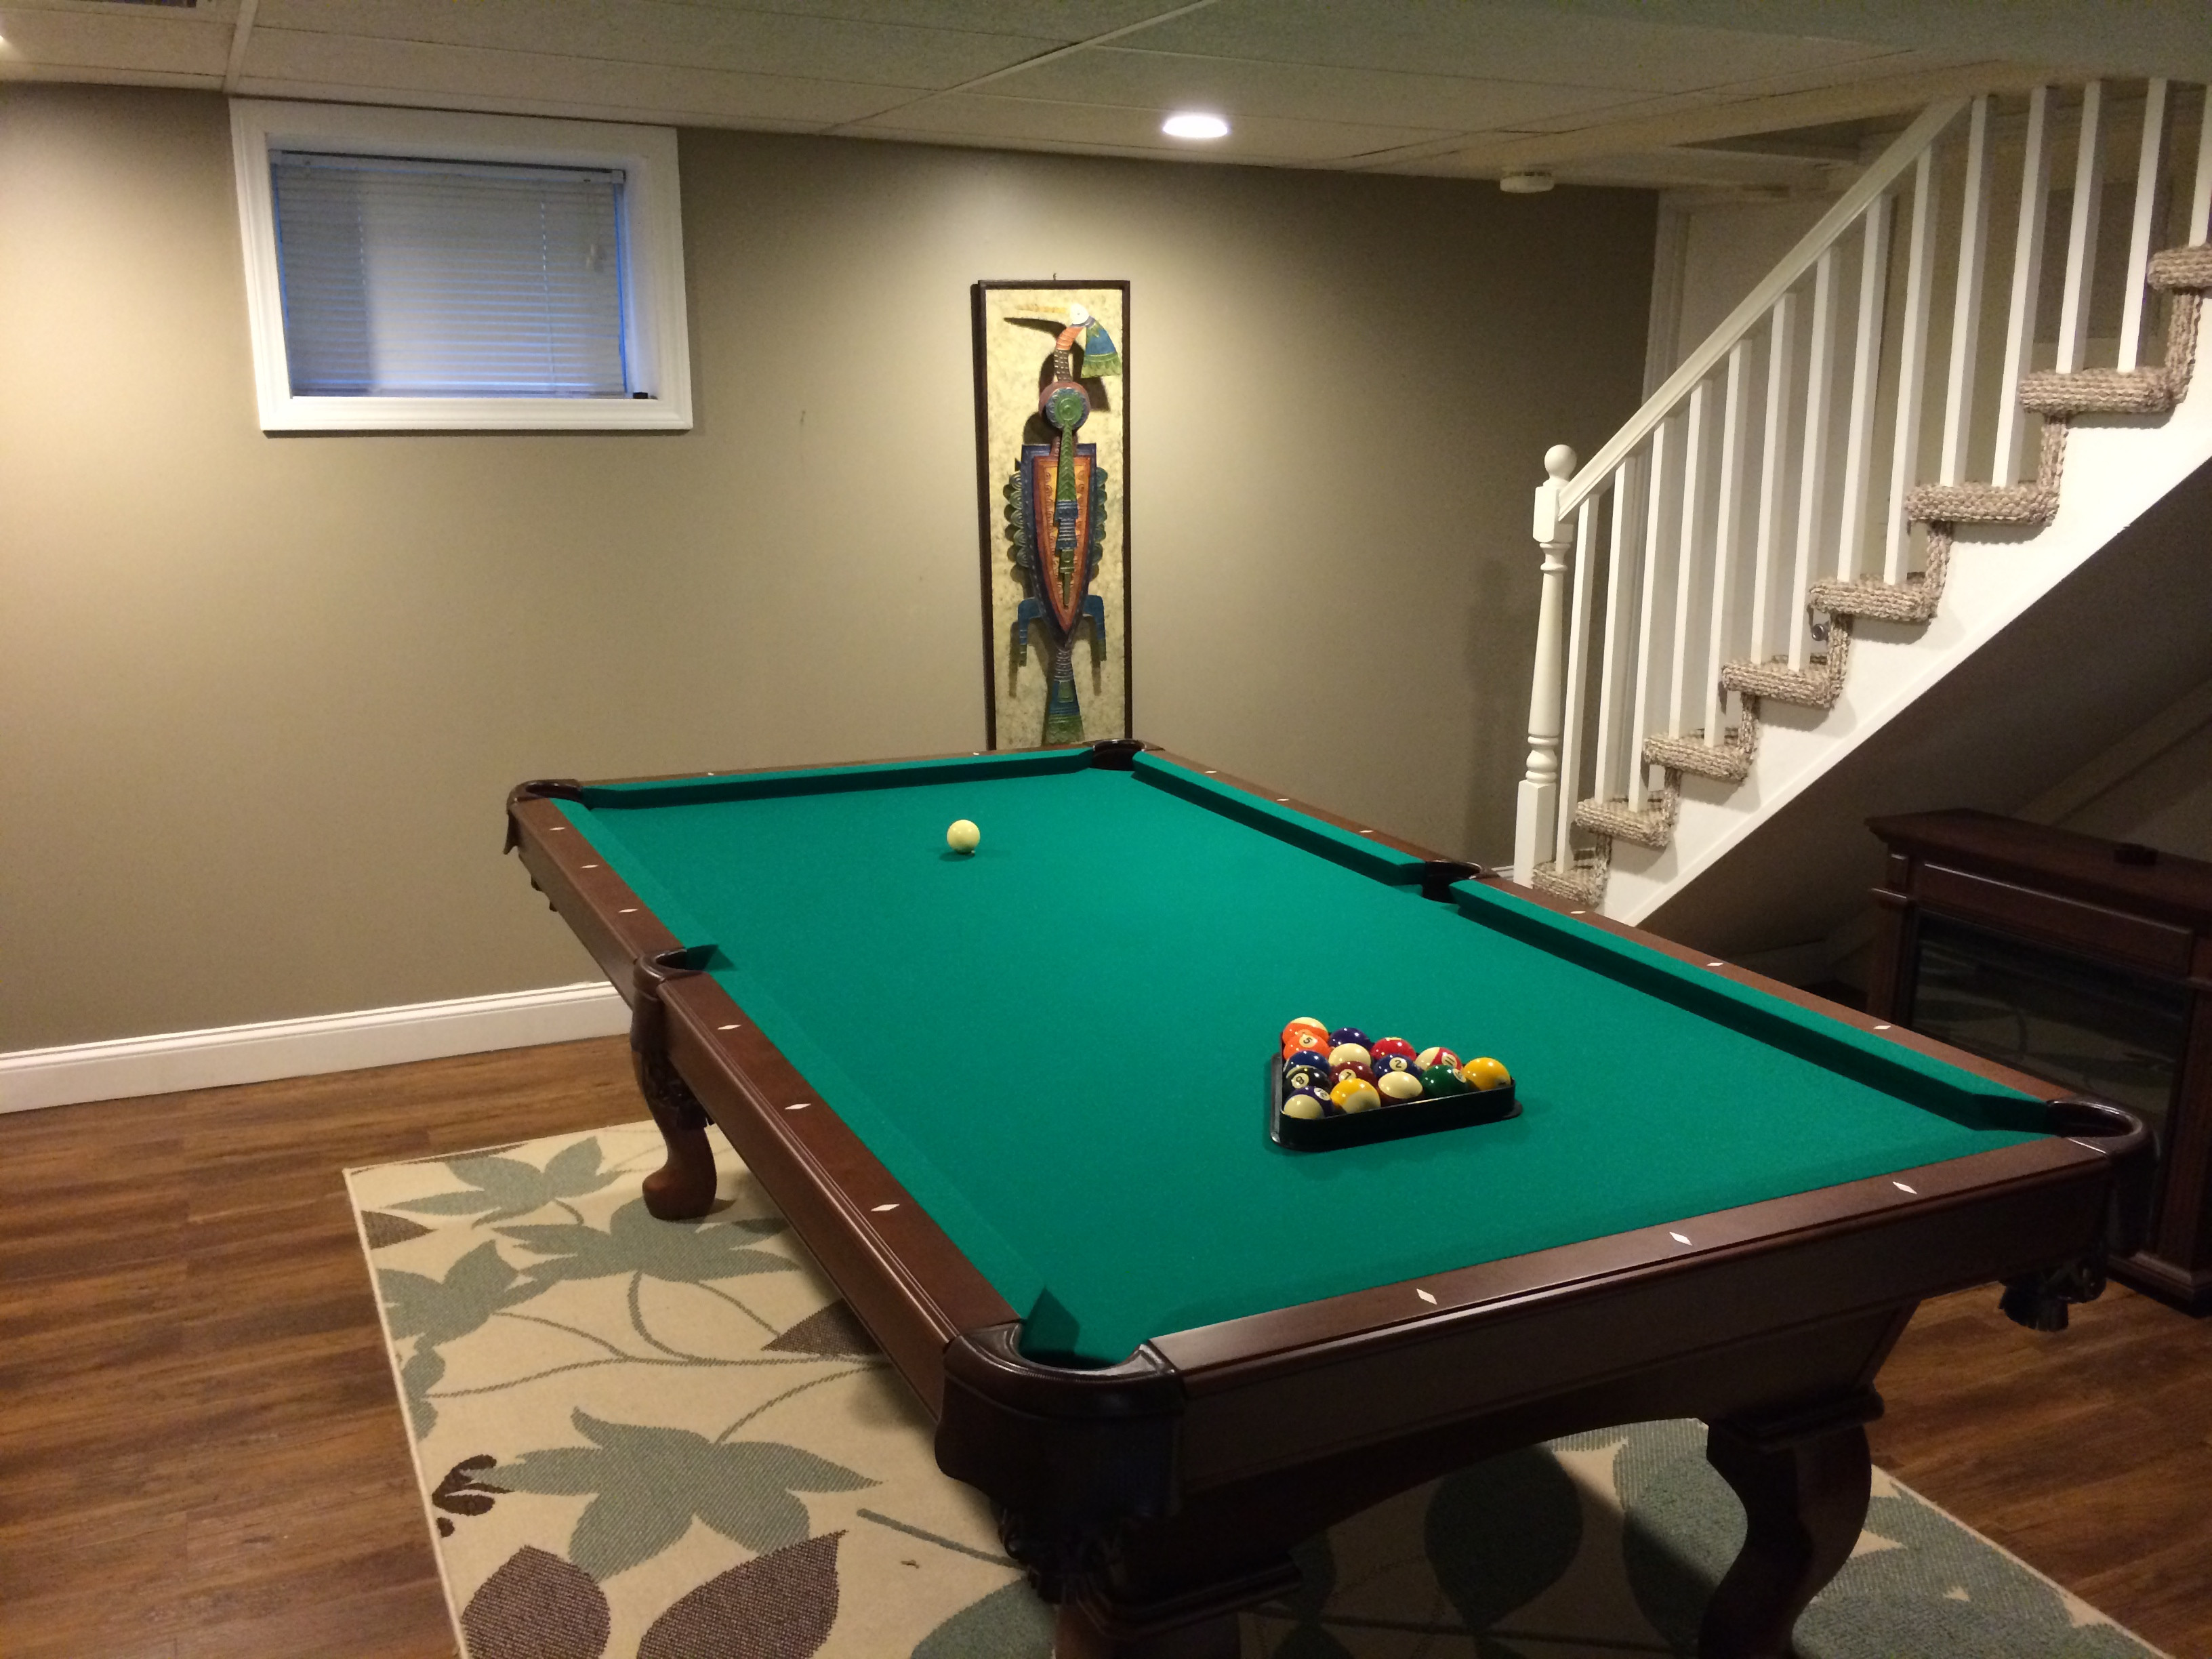 Best ideas about Namco Pool Patio & Game Room Superstore . Save or Pin KAKS Basement Finishing & Design Hanover Massachusetts Now.